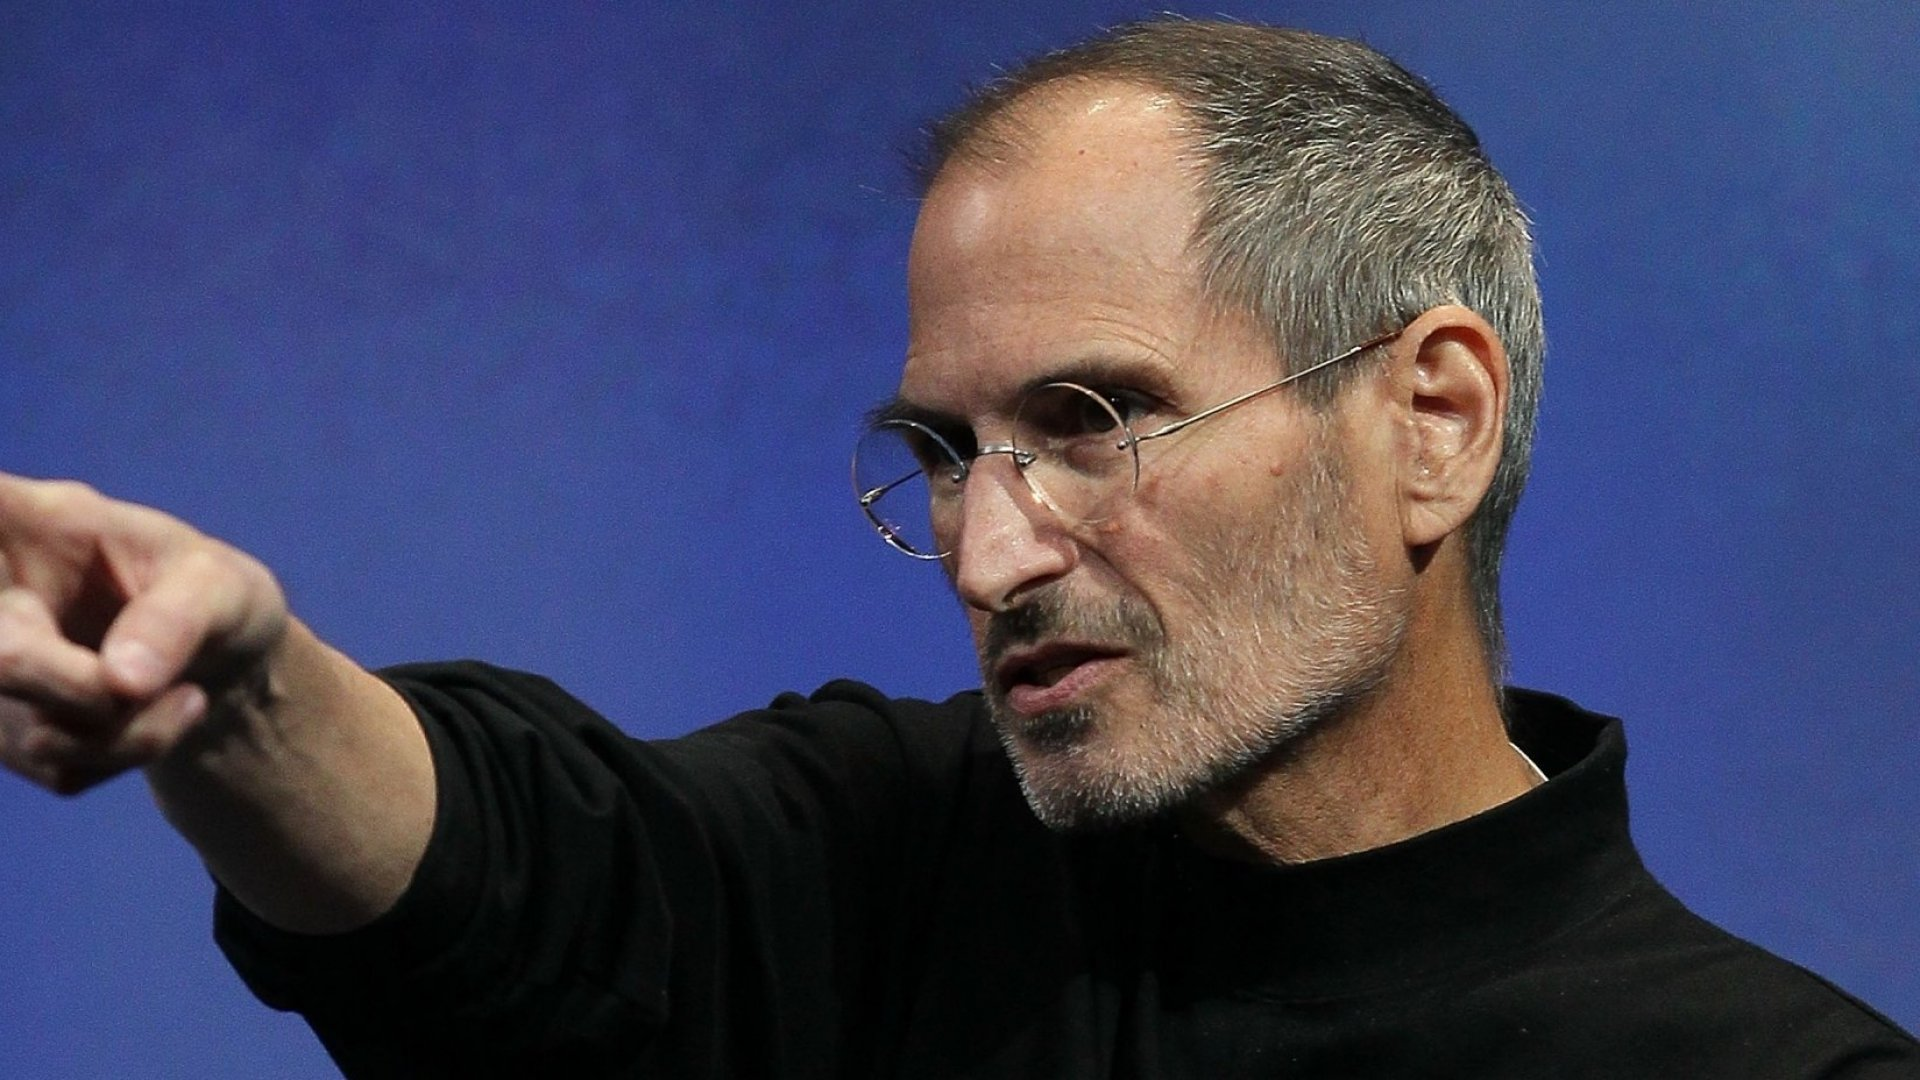 Want to Live a Literally Awesome Life? Be Inspired By Steve Jobs's Last Words